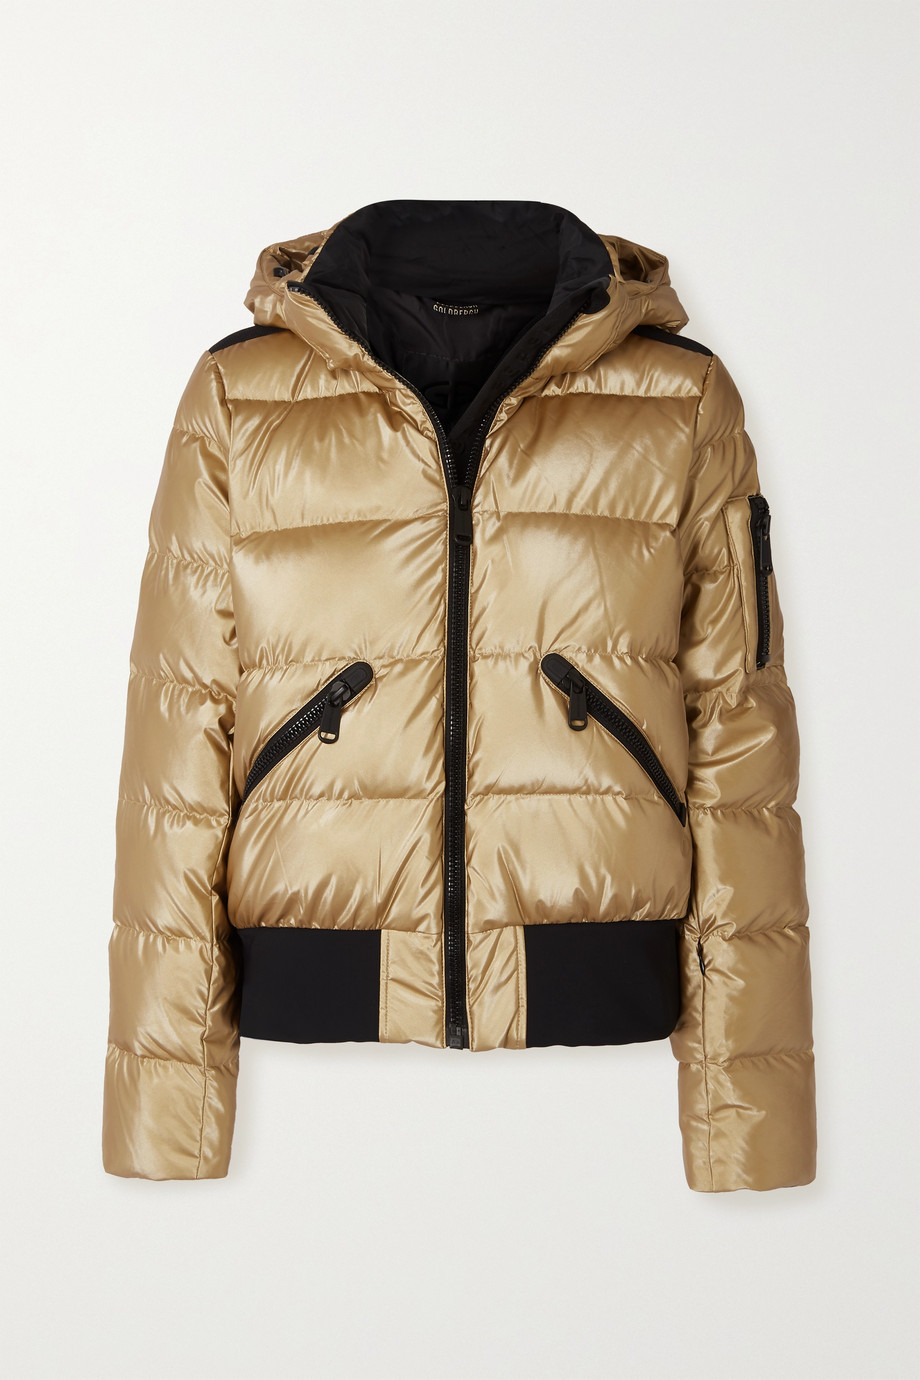 Goldbergh Aura hooded quilted metallic down ski jacket